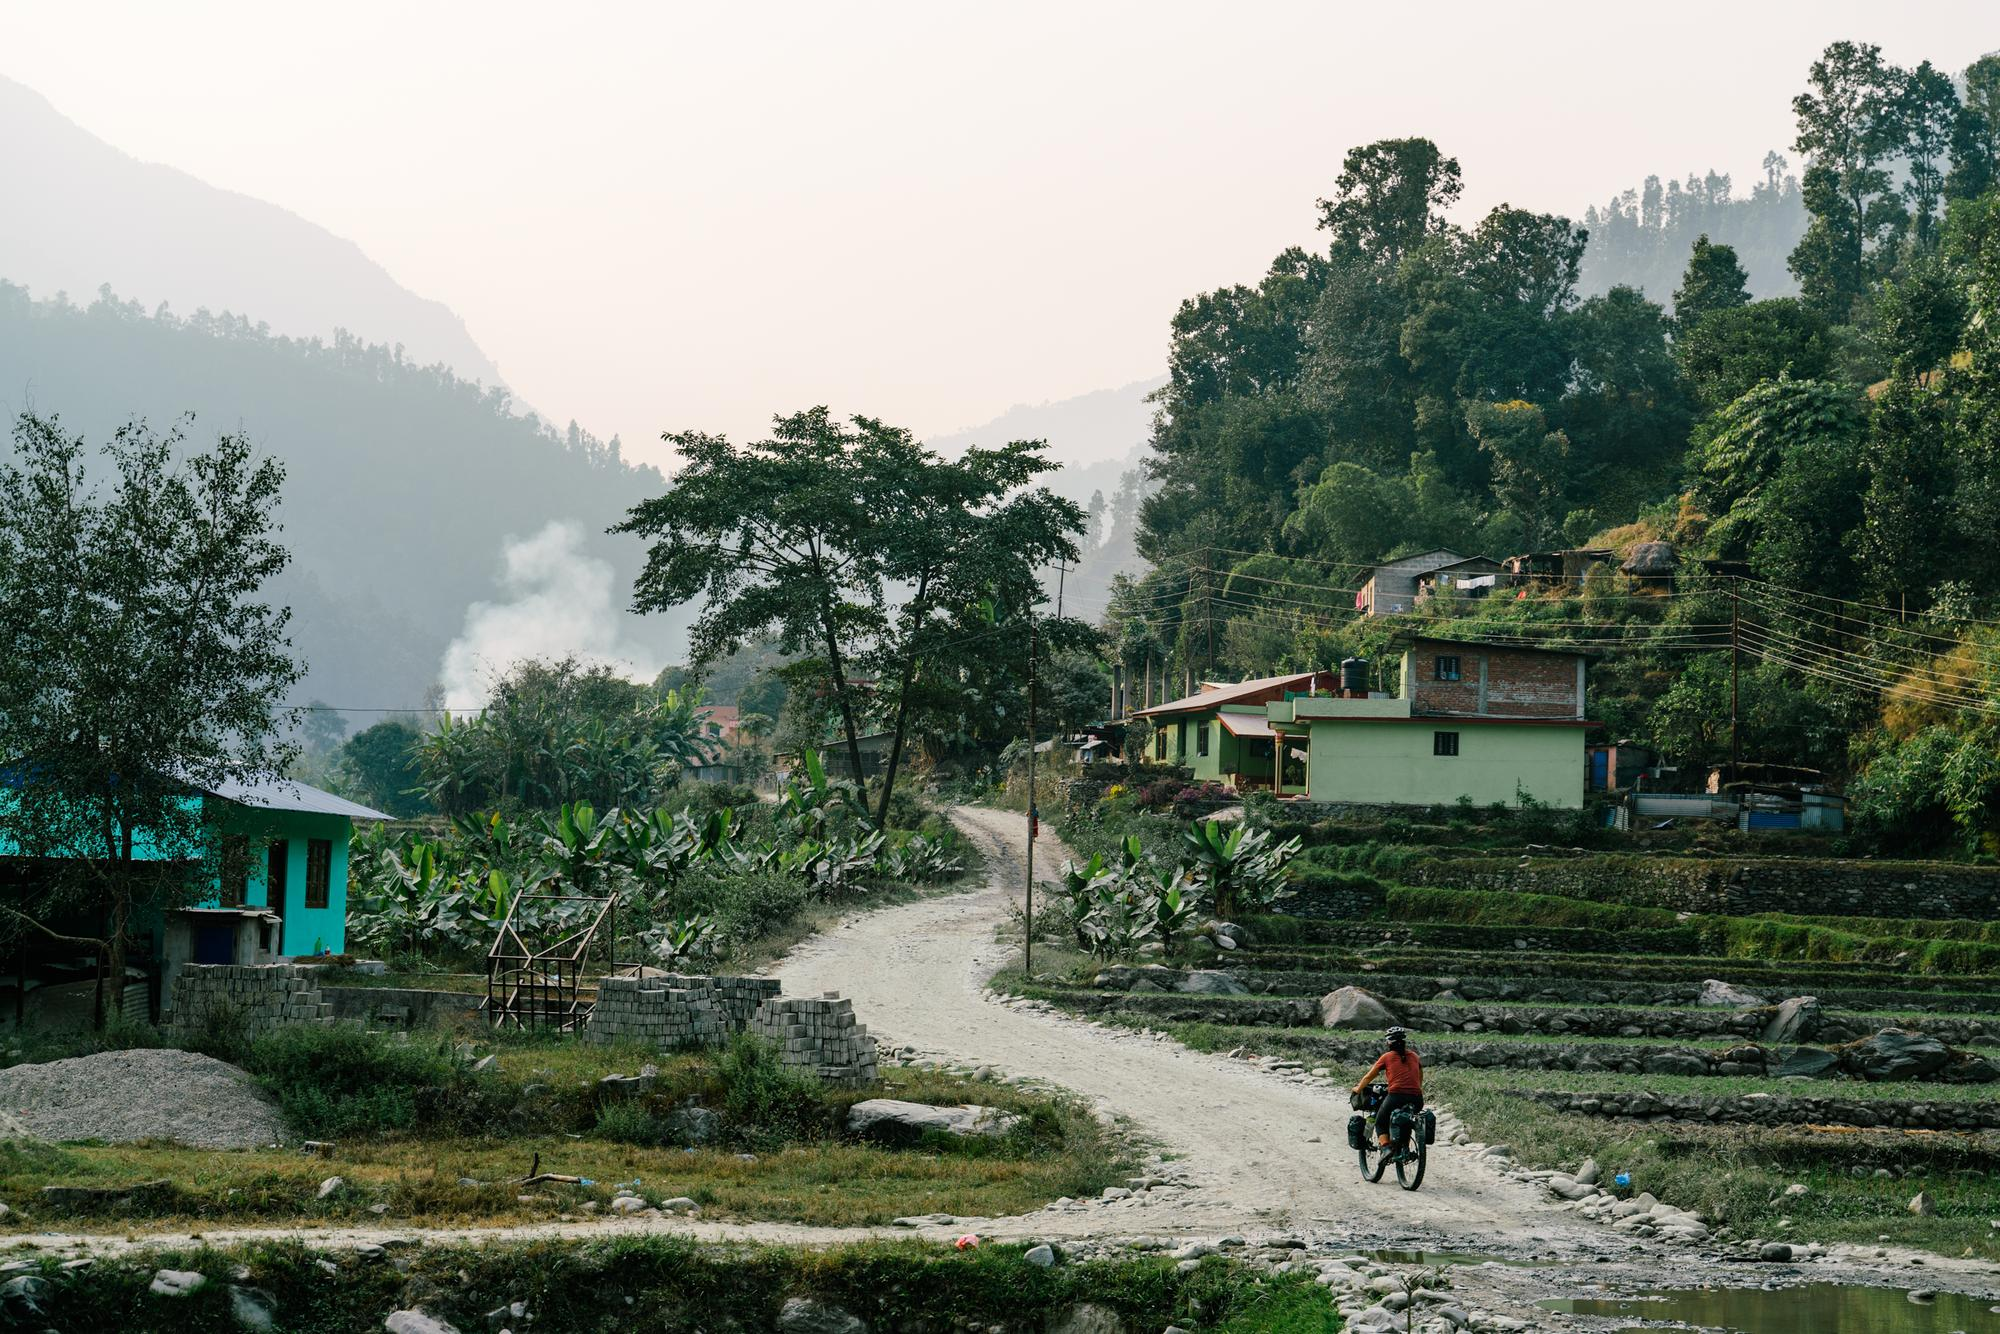 Winding through the terraced hills